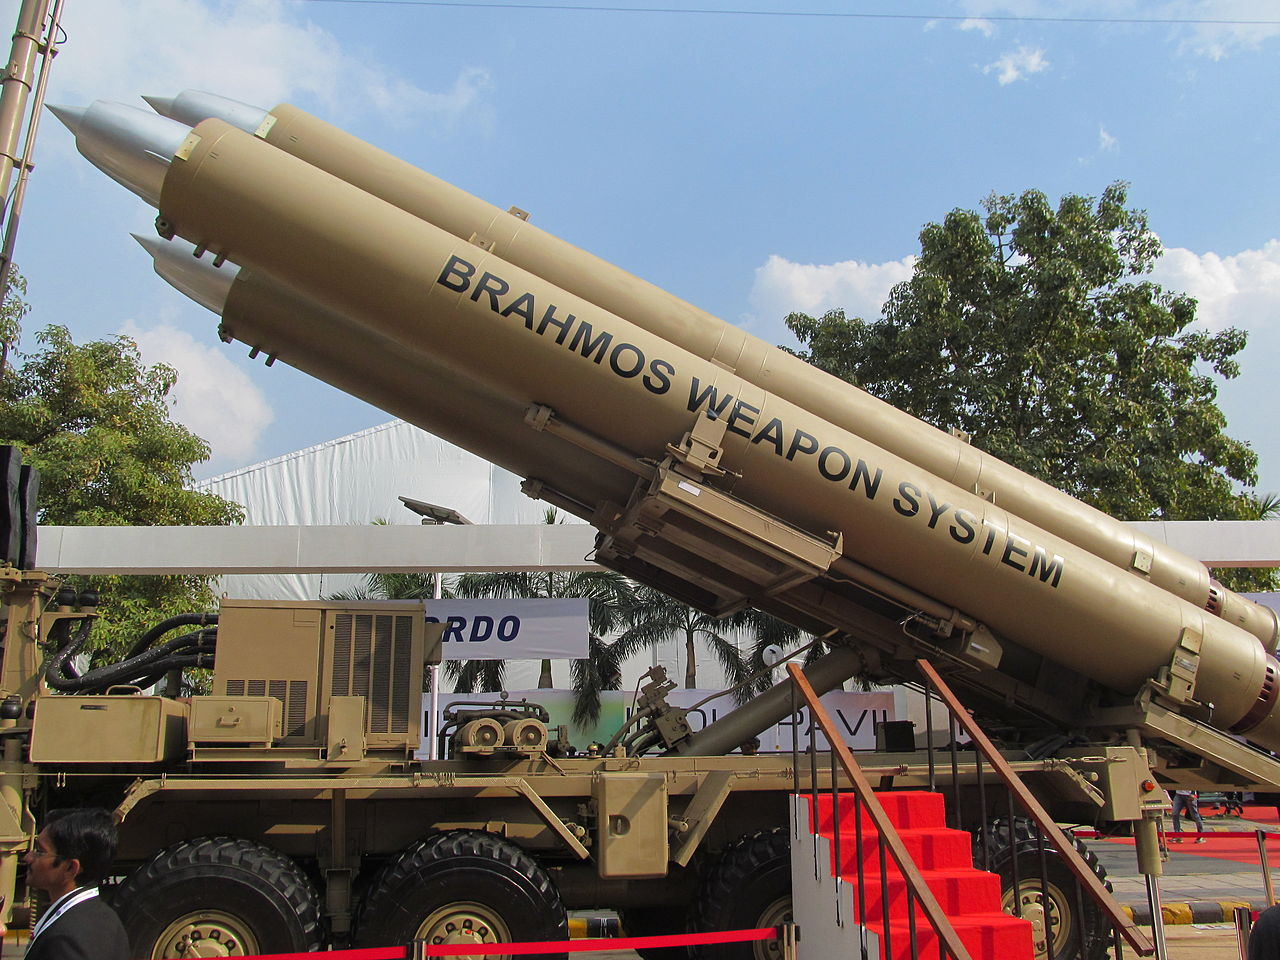 BrahMos: India's Supersonic Missile That Terrifies China ...